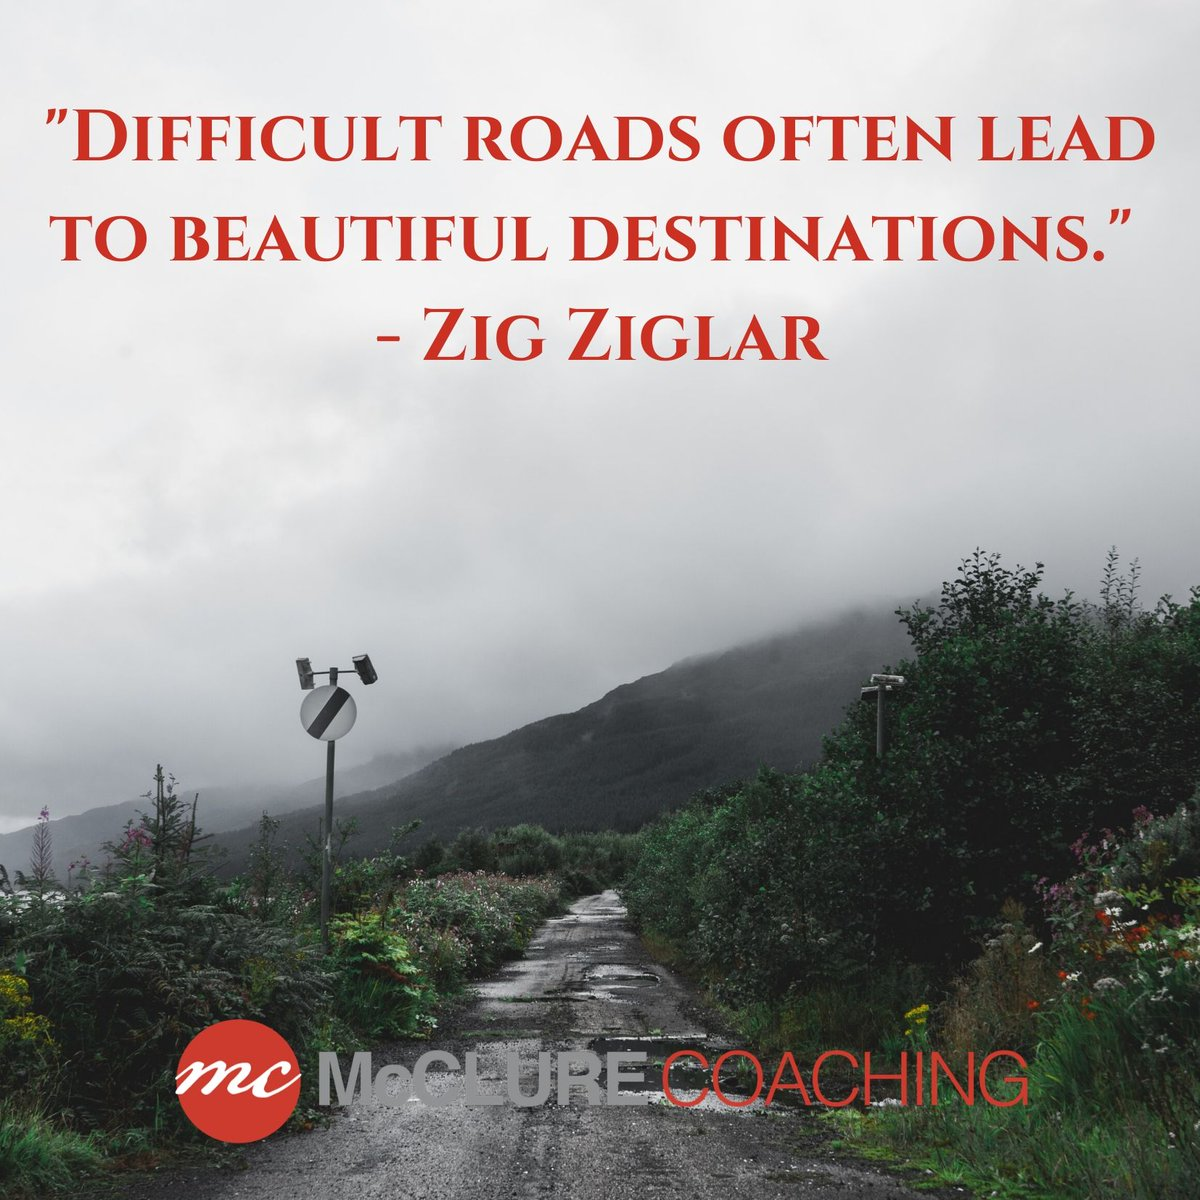 We want the path to success to be smooth and obstacle-free, but the difficulties of the journey build us into stronger people who can achieve our goals and dreams.  #leadership #leaders #leadershipdevelopment #personalgrowth #teamdevelopment #greatness #successpic.twitter.com/I9wfcGT55V